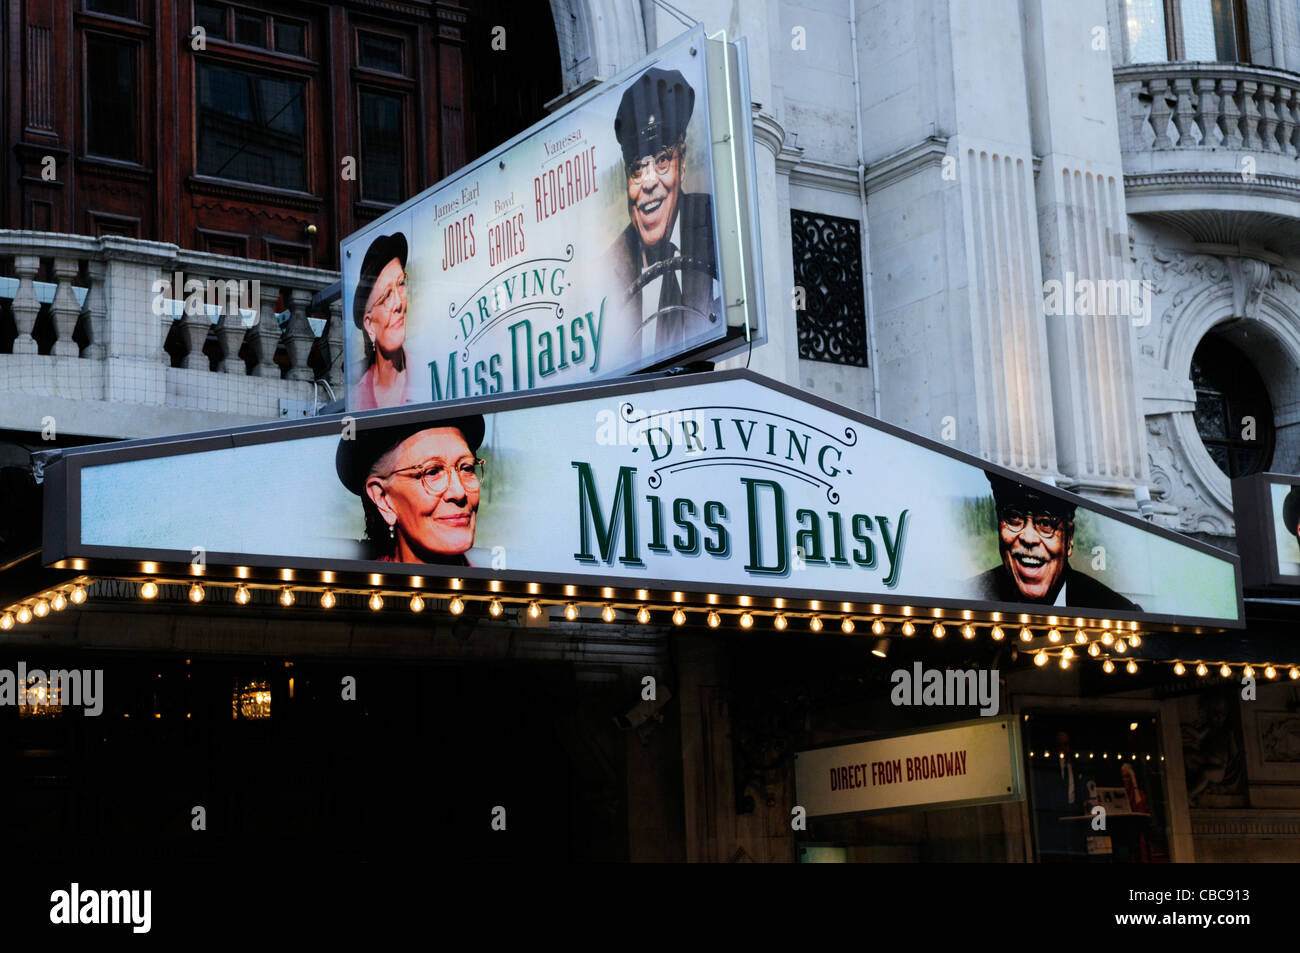 Driving Miss Daisy Billboard at Wyndham's Theatre, Charing Cross Road, London, England, UK - Stock Image